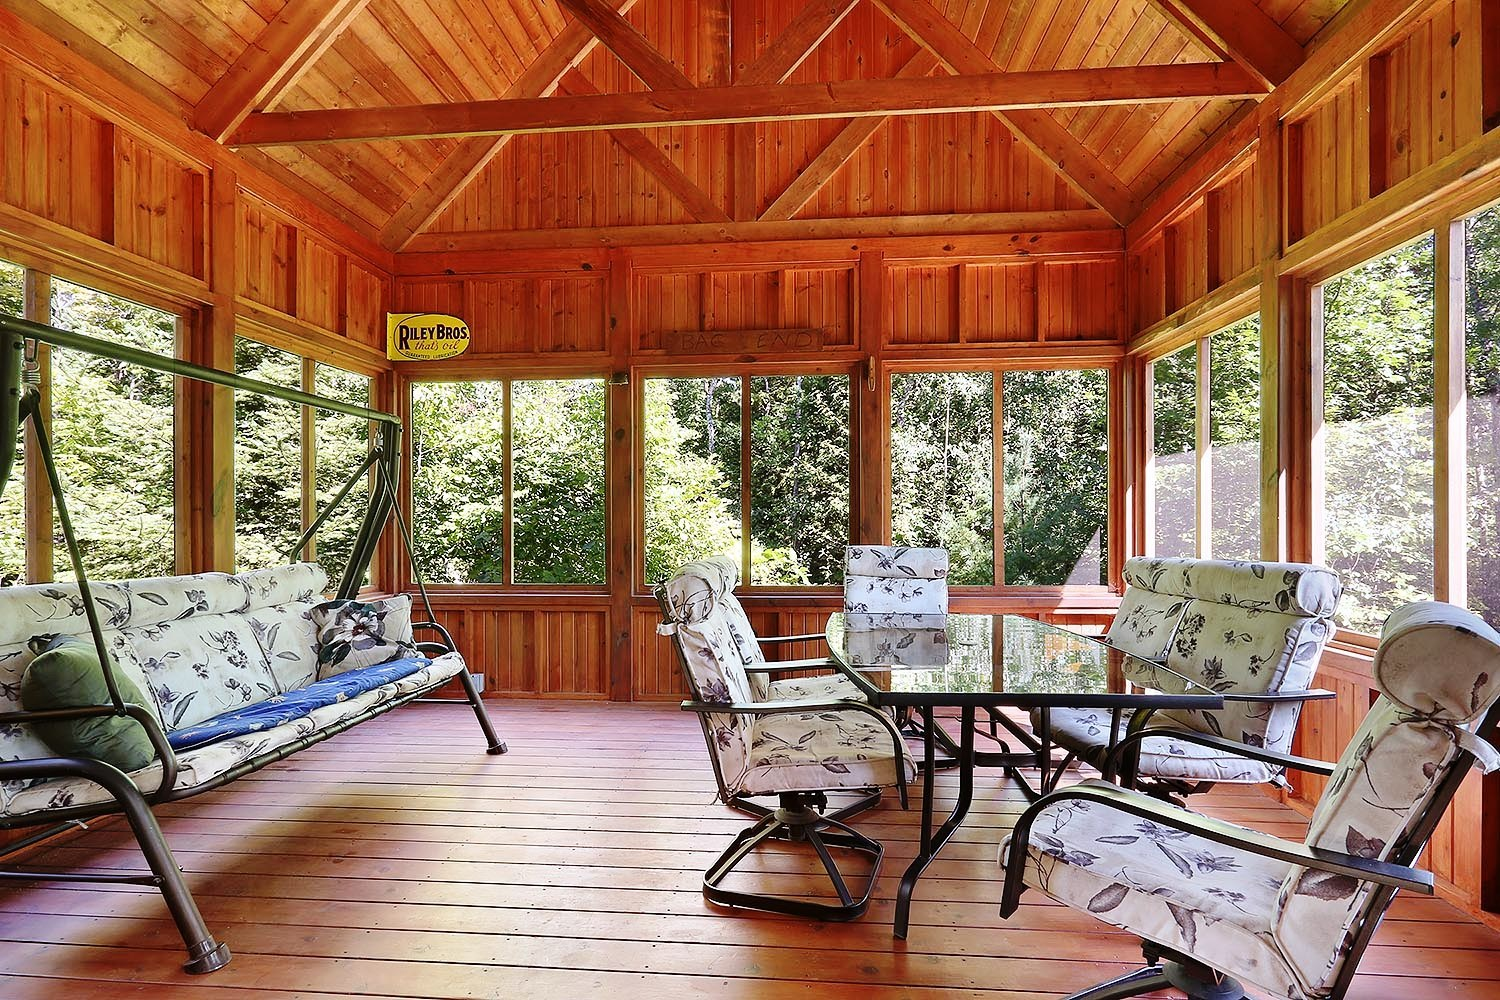 Homes for Sale with Screen Porches on the Lake